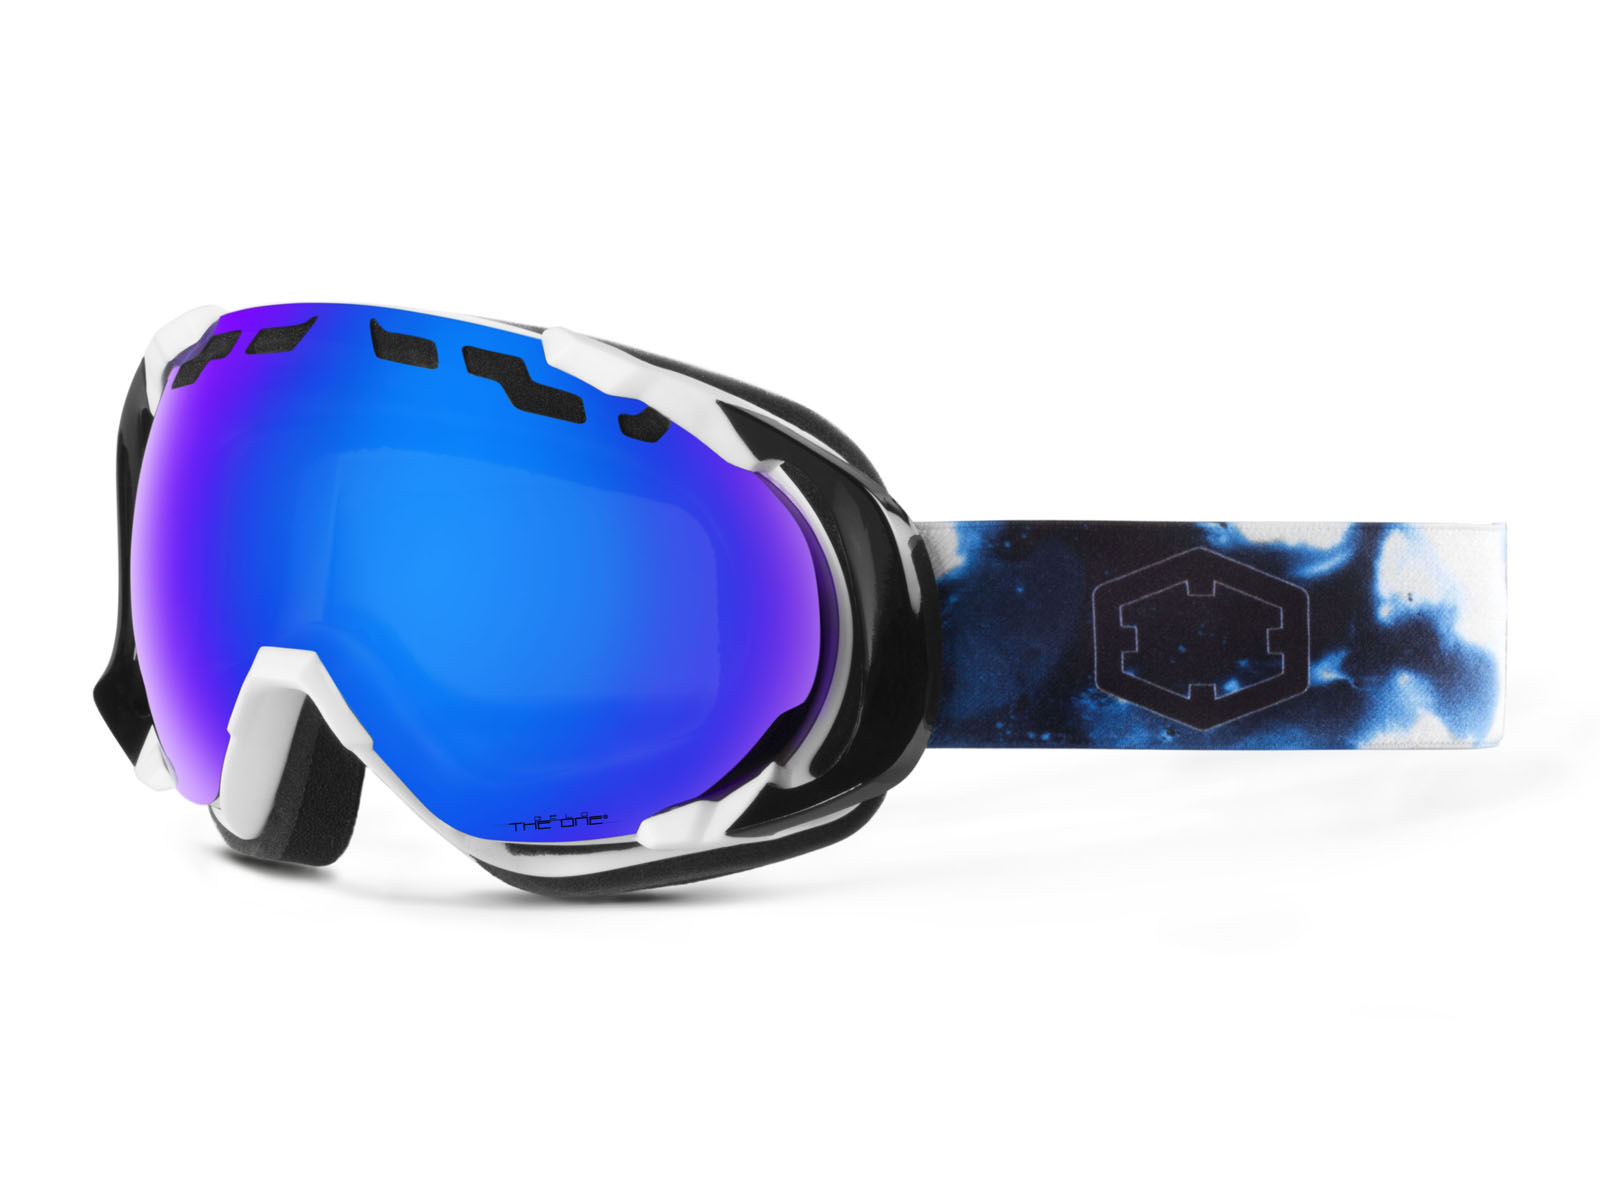 EDGE ARTIC THE ONE GELO GOGGLE